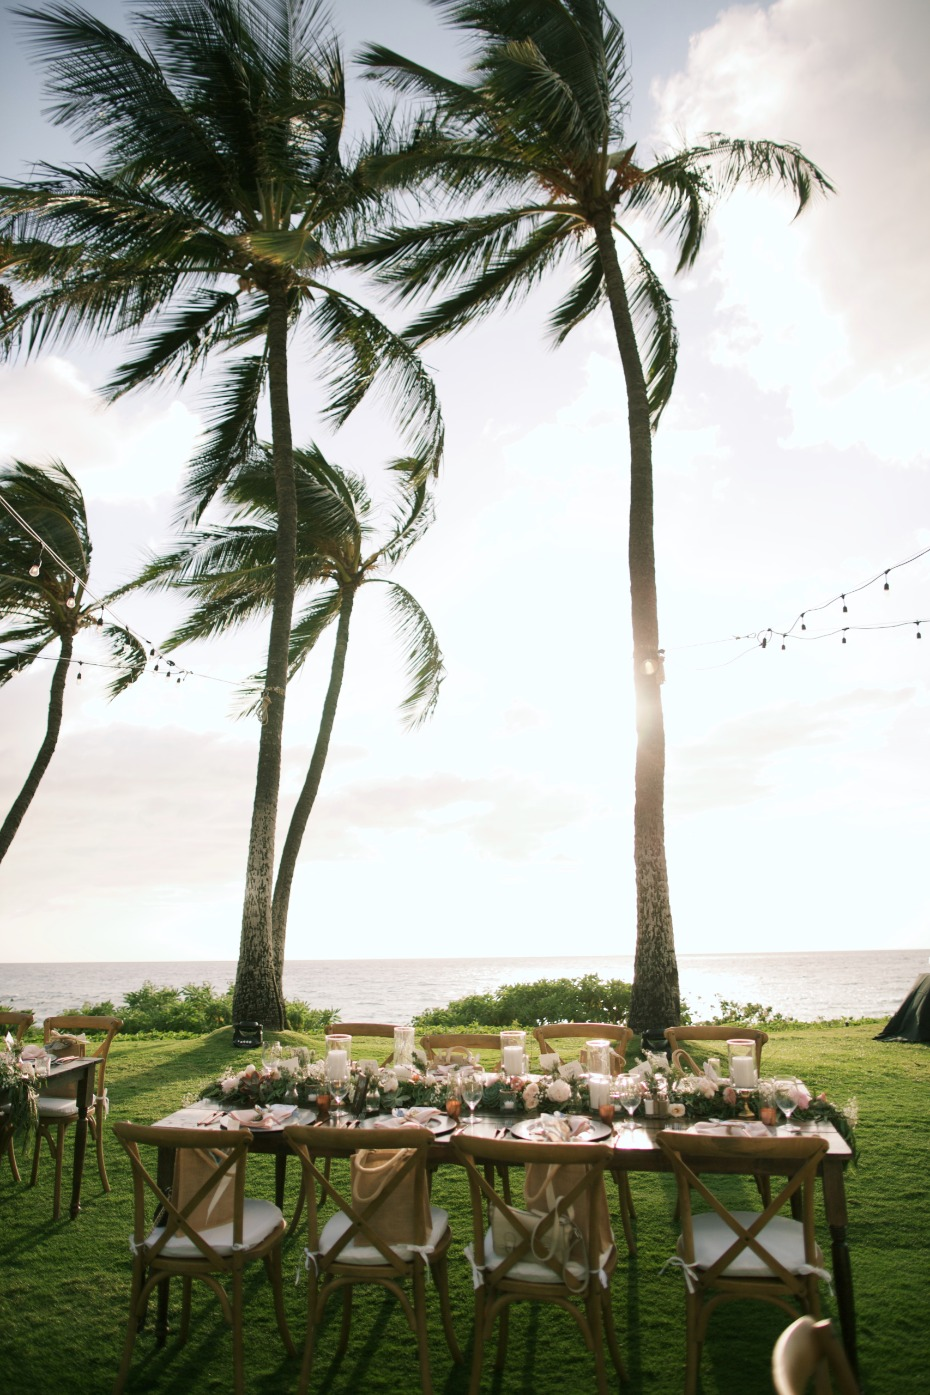 Beautiful reception where the palm trees sway